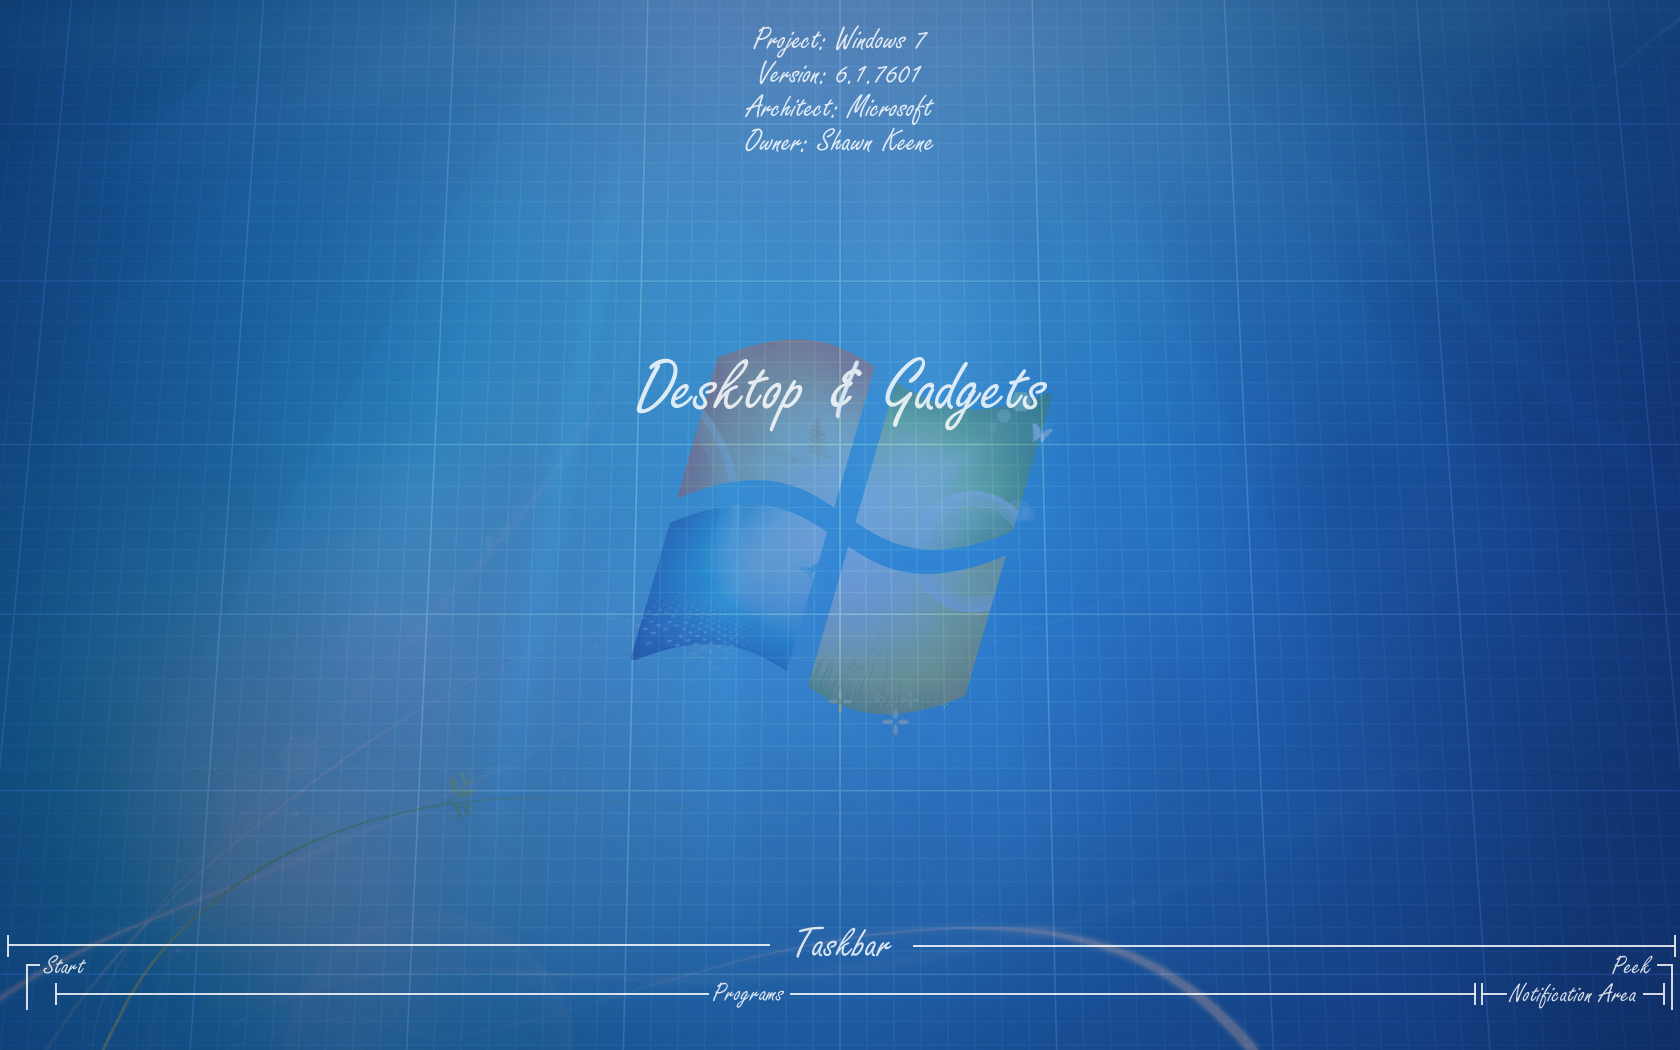 45 Widescreen HDQ <b>Wallpapers</b> of <b>Blueprint</b> for Windows and <b>Mac</b> Systems